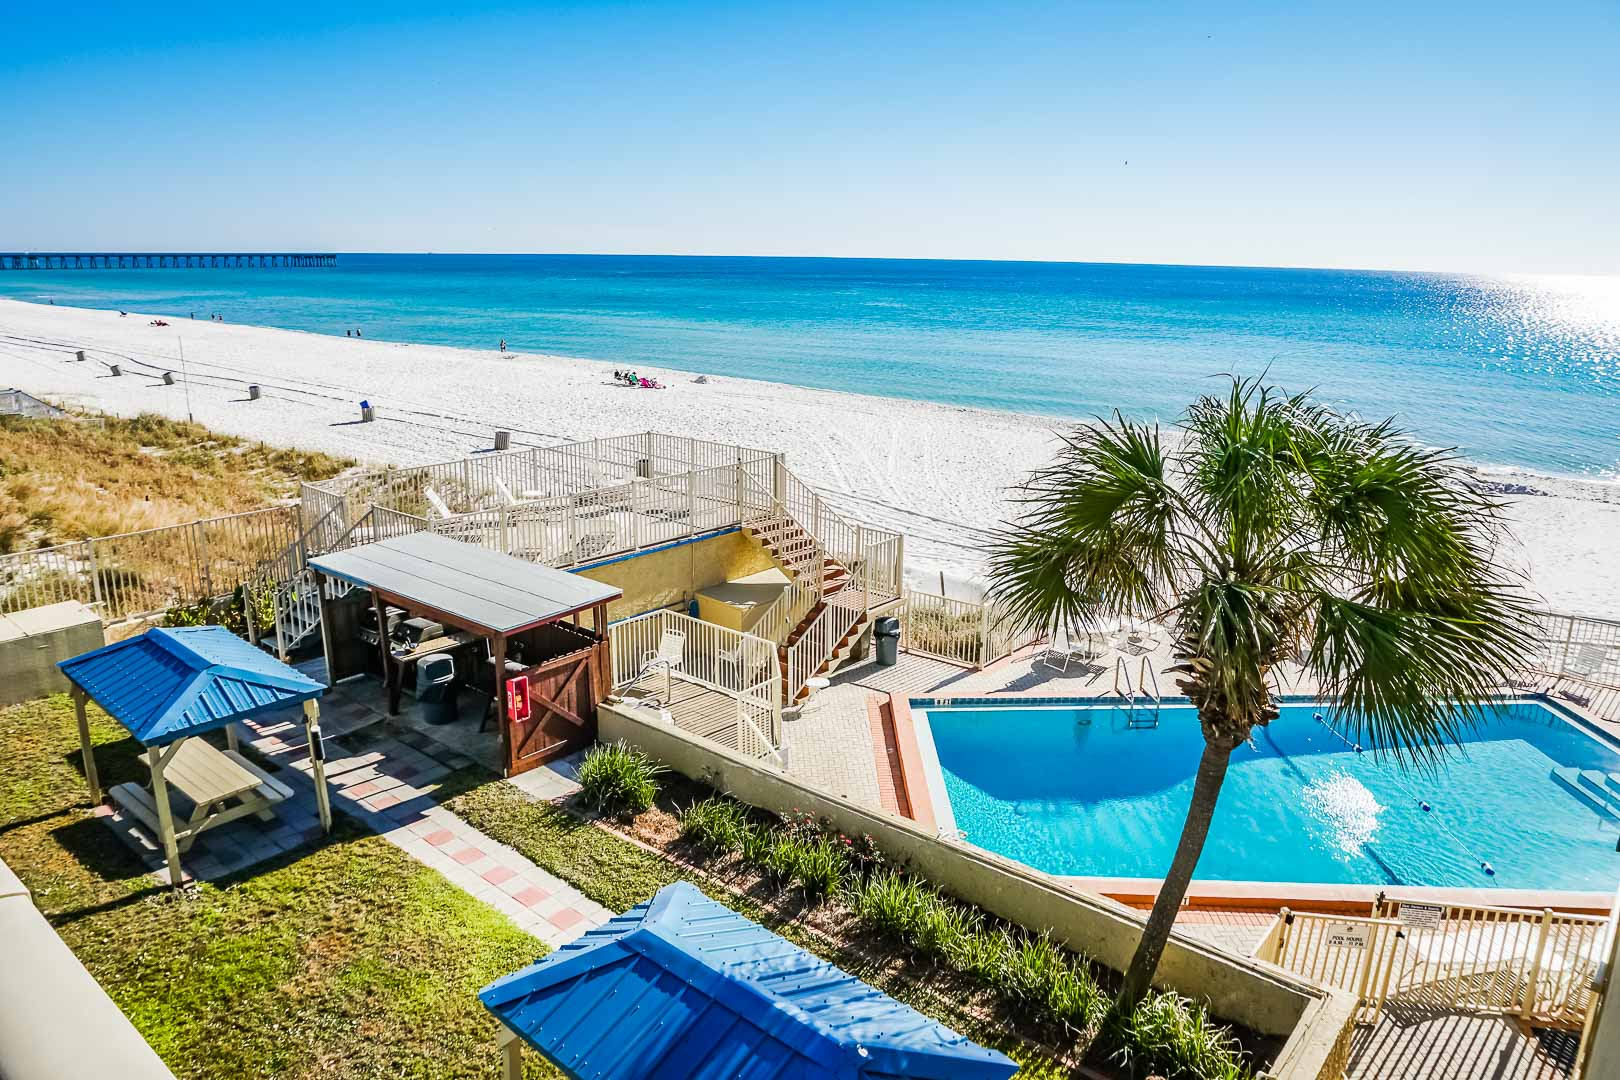 A crisp pool with beach access at VRI's Panama City Resort & Club in Florida.